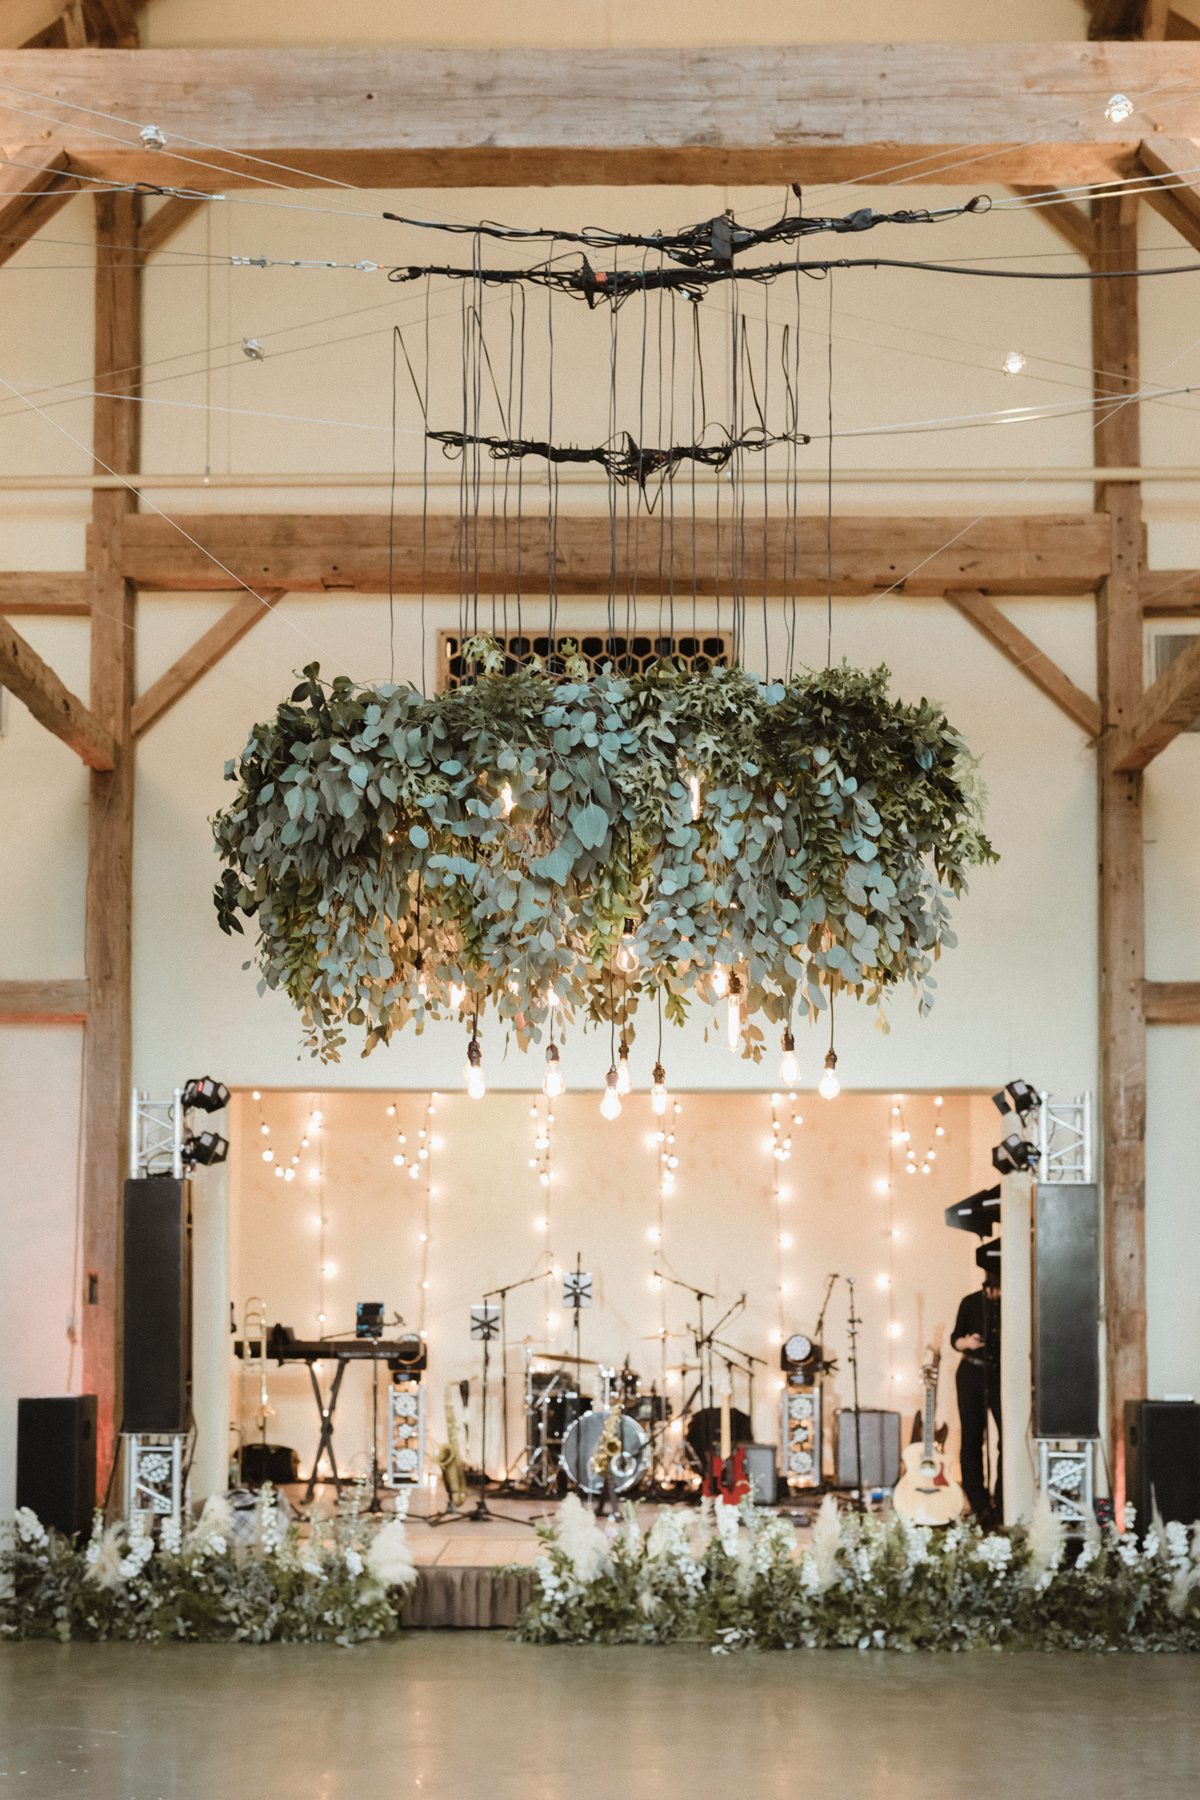 large hanging greenery display over dance floor